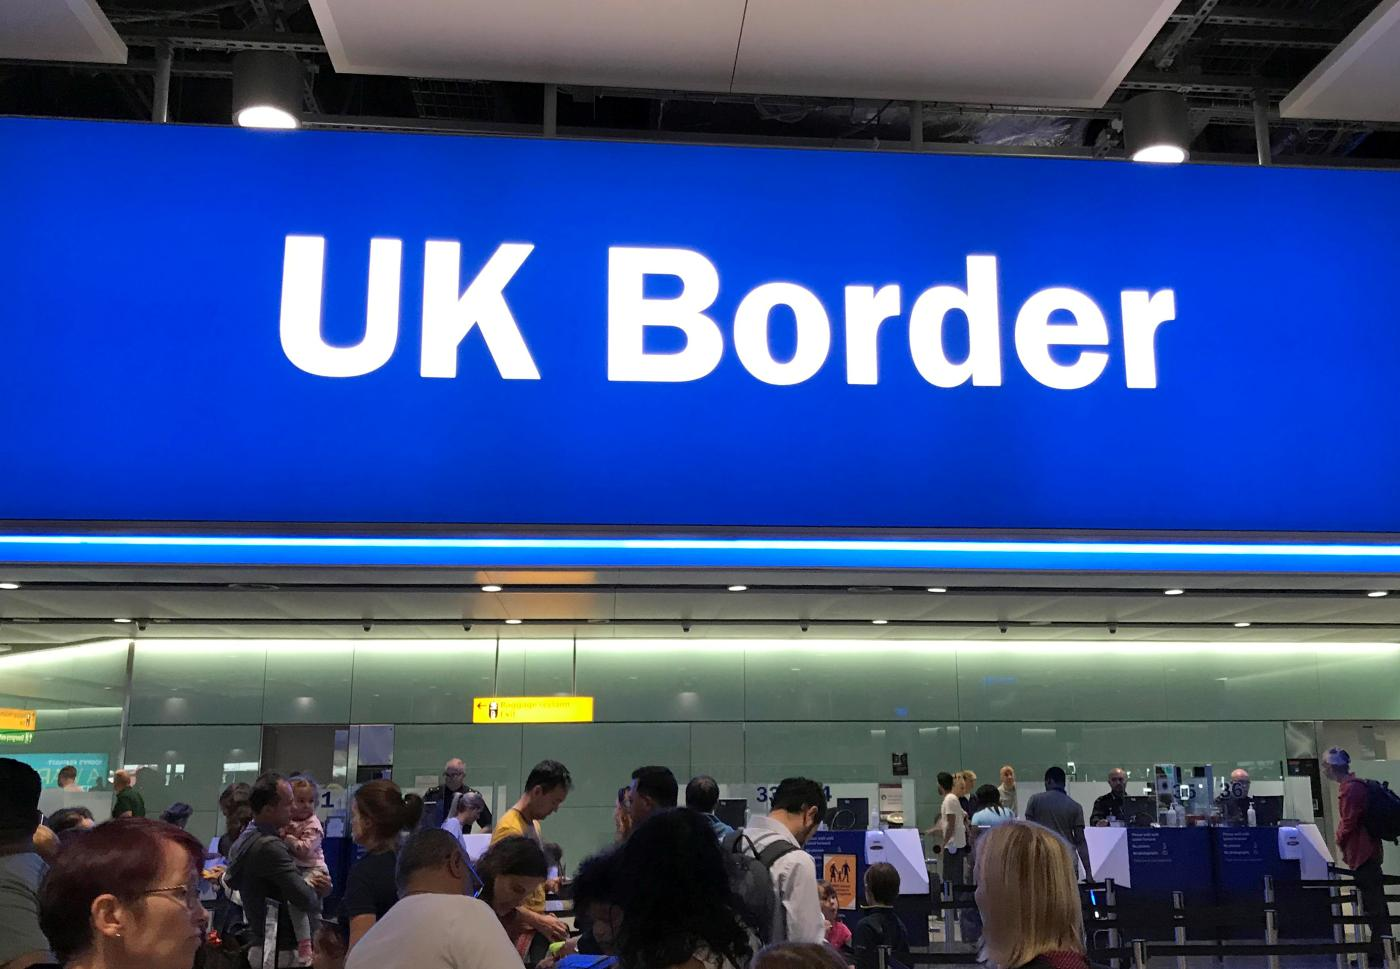 There is increasing evidence Africans are being unfairly denied UK visas